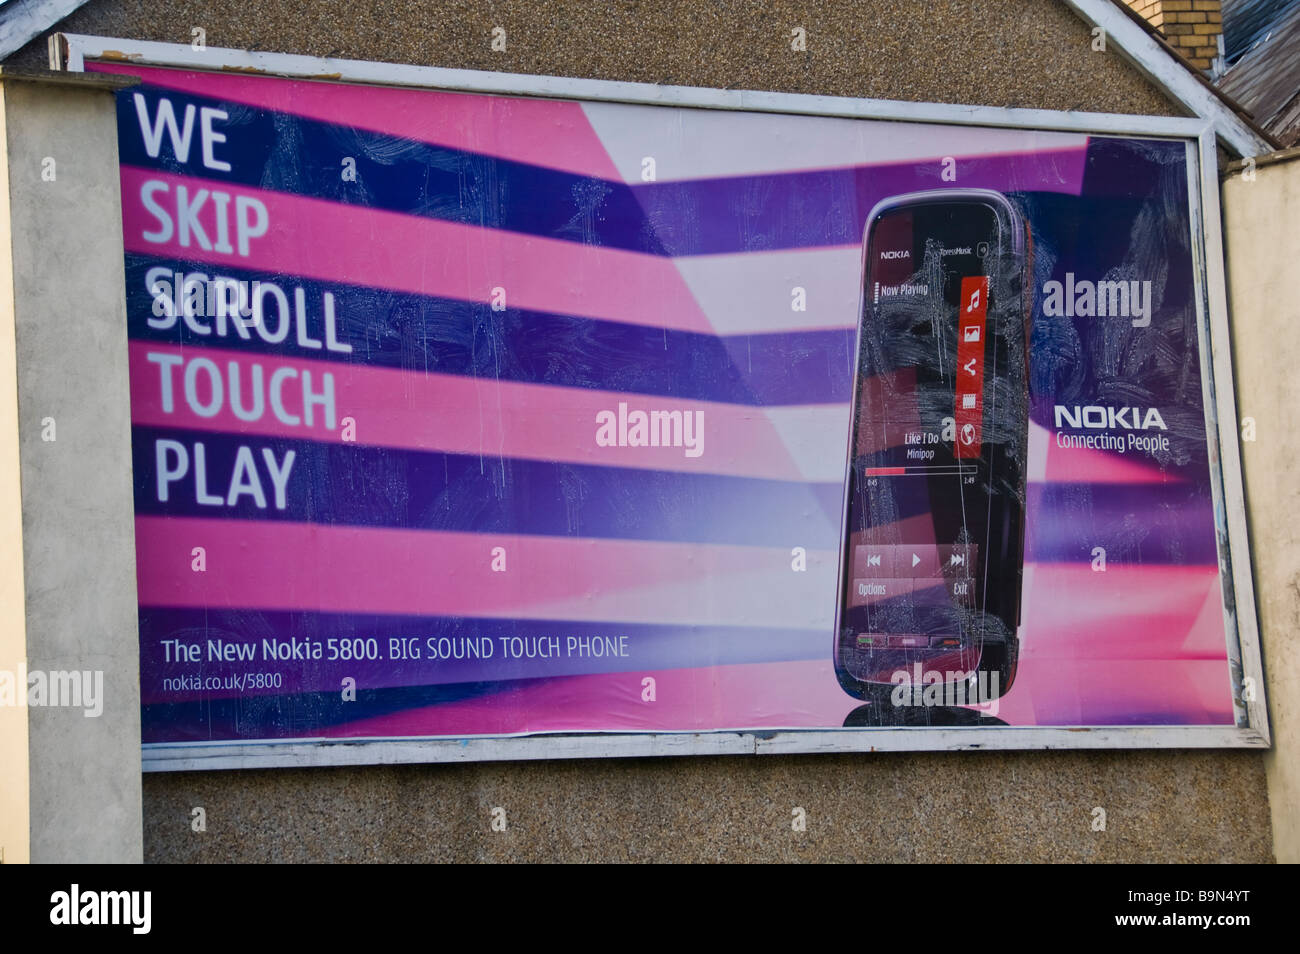 Advertising billboard for Nokia mobile phone on wall of pub building at Crumlin in South Wales Valleys UK - Stock Image